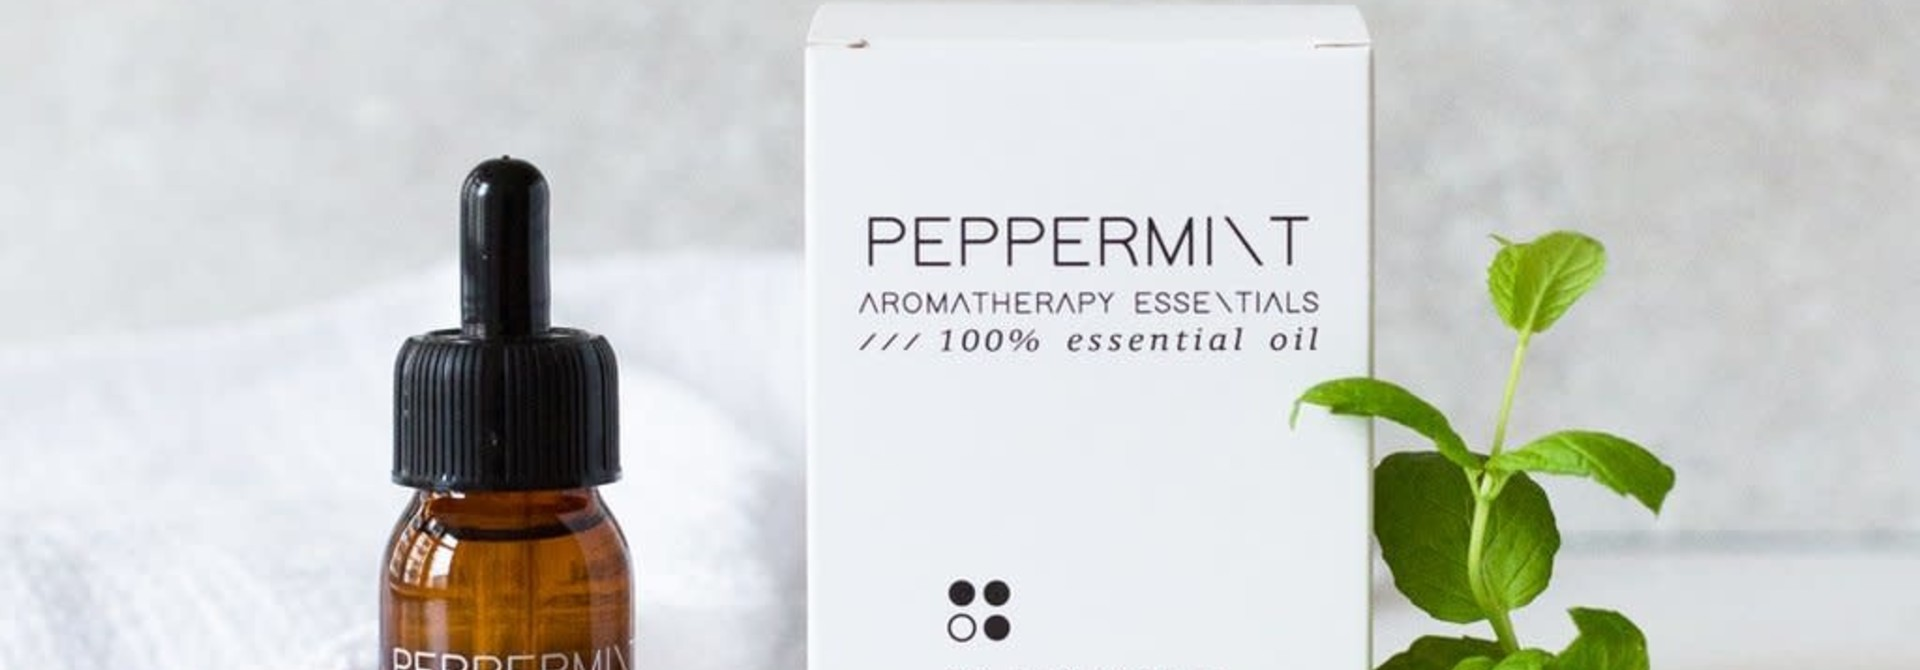 Peppermint Aromatherapy Essentials Oils